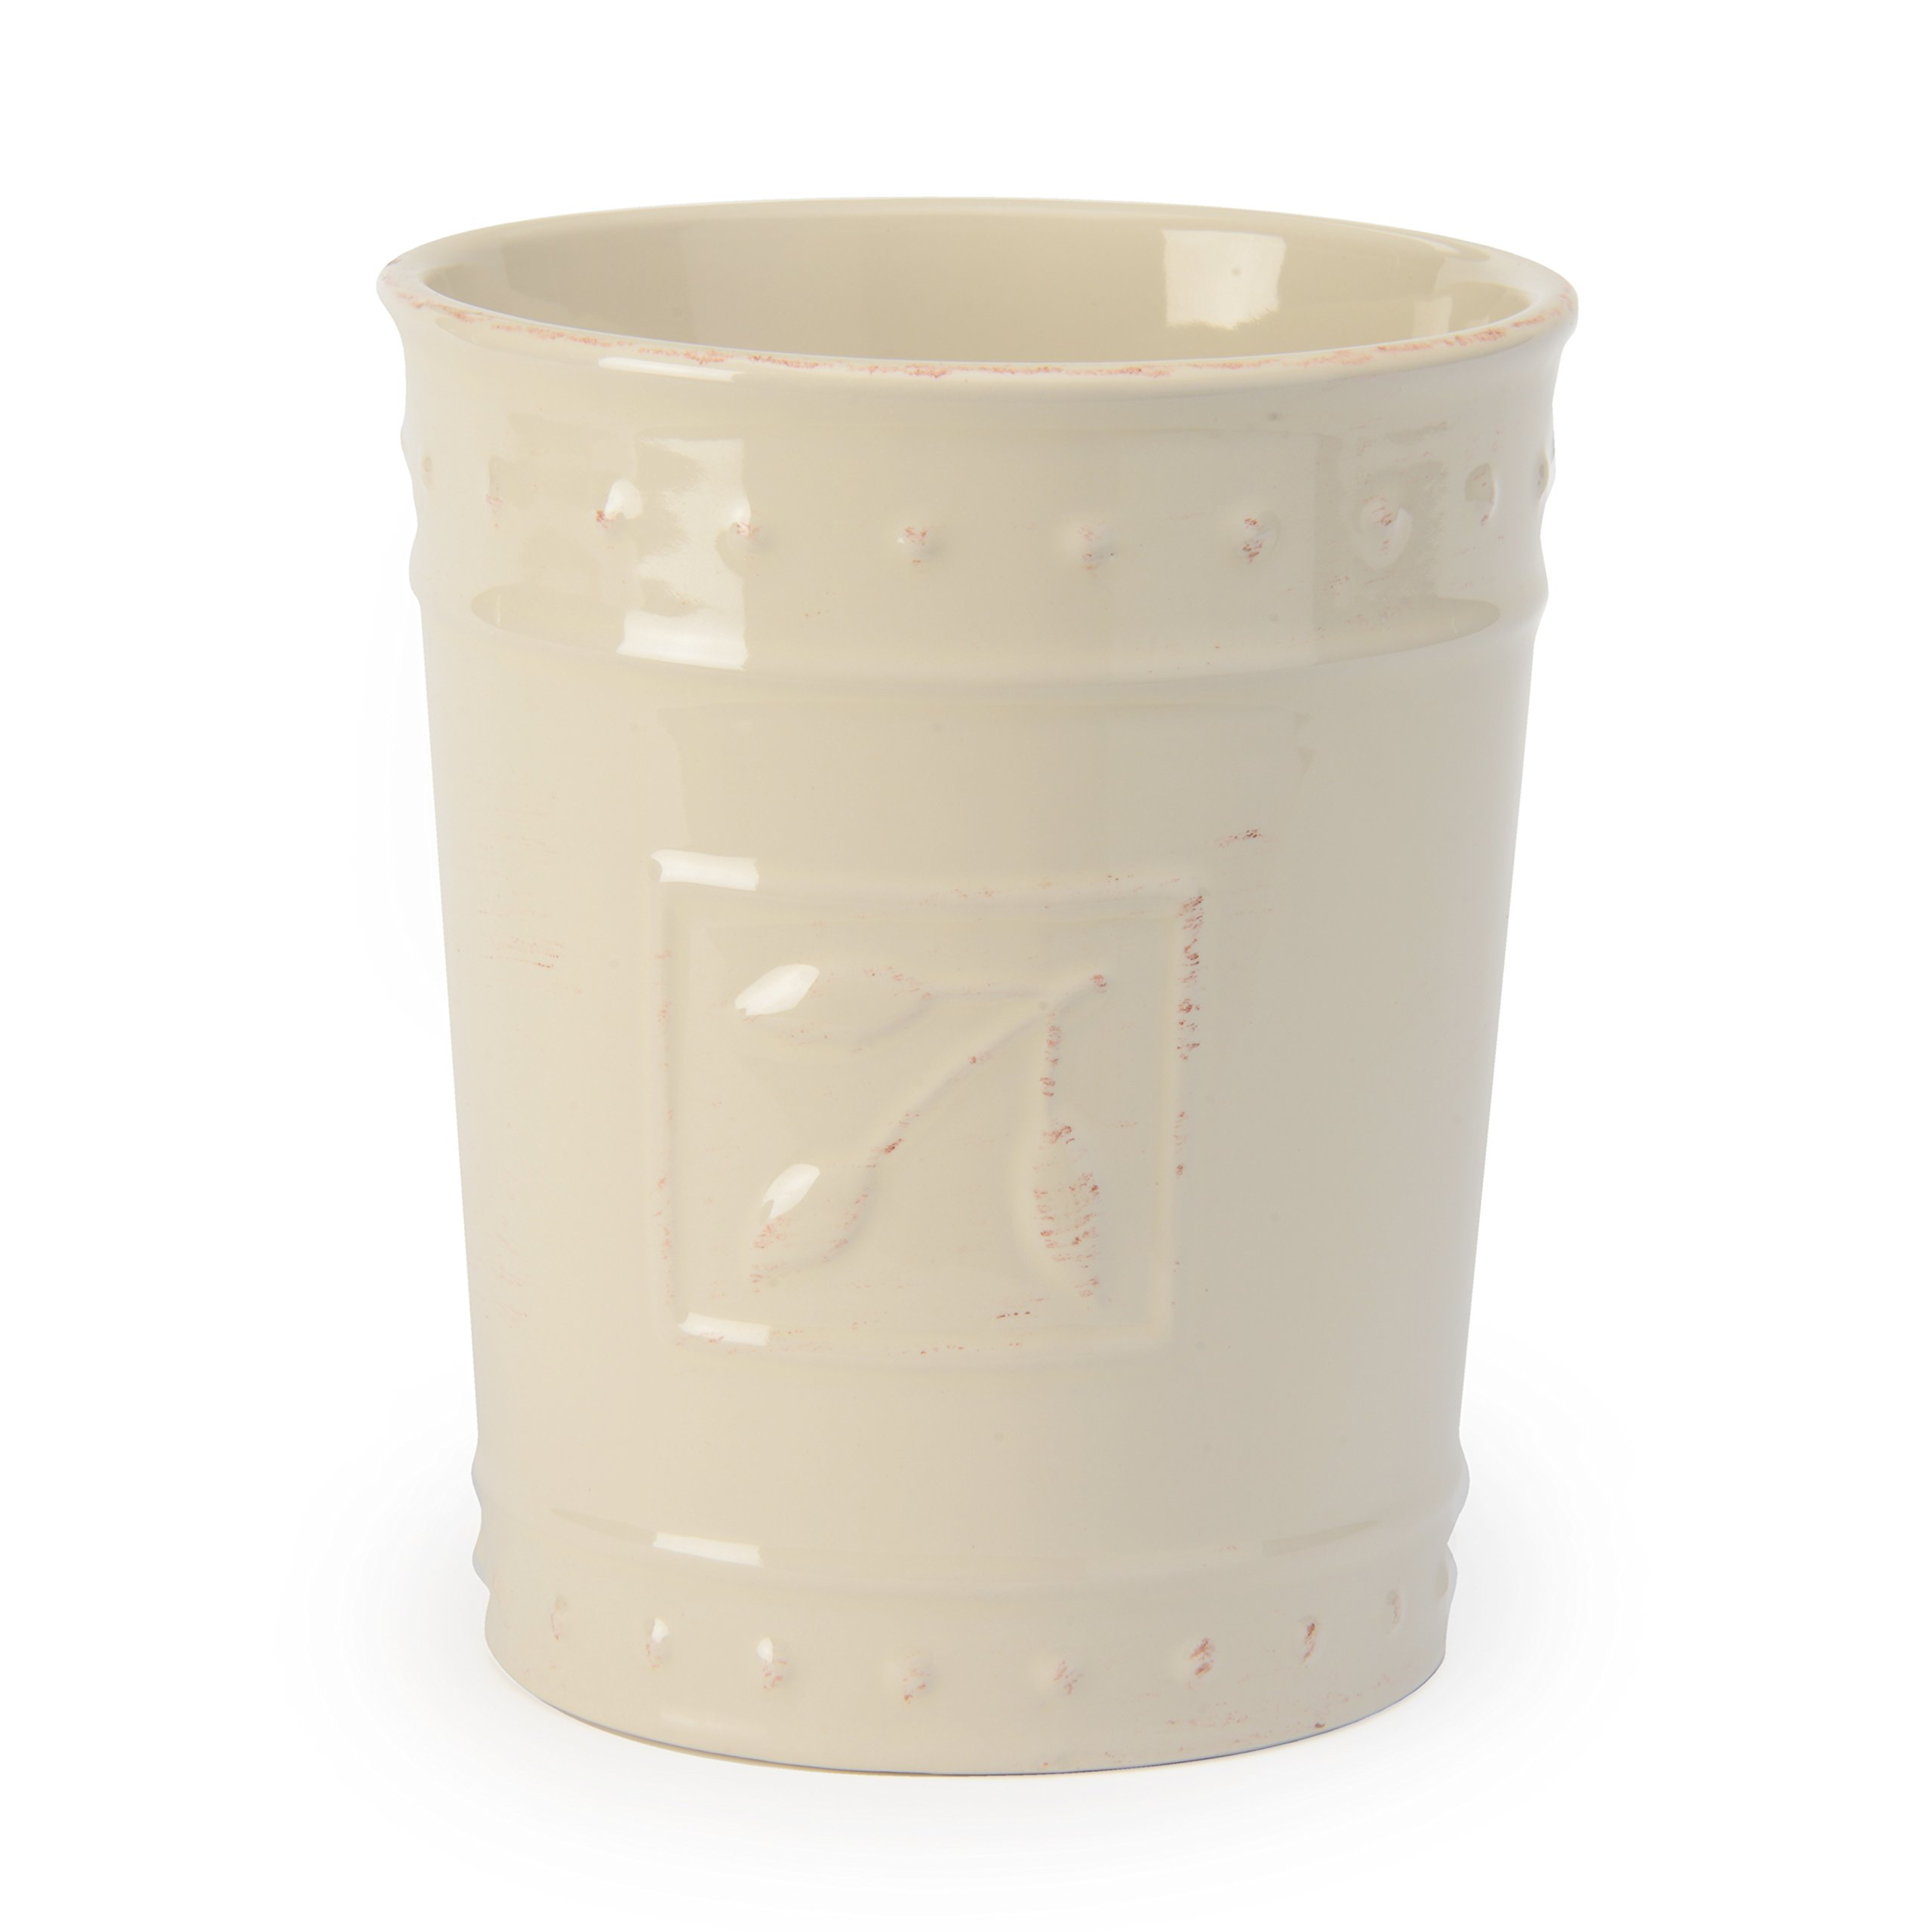 Signature Housewares Sorrento Collection Tool Jar, Ivory